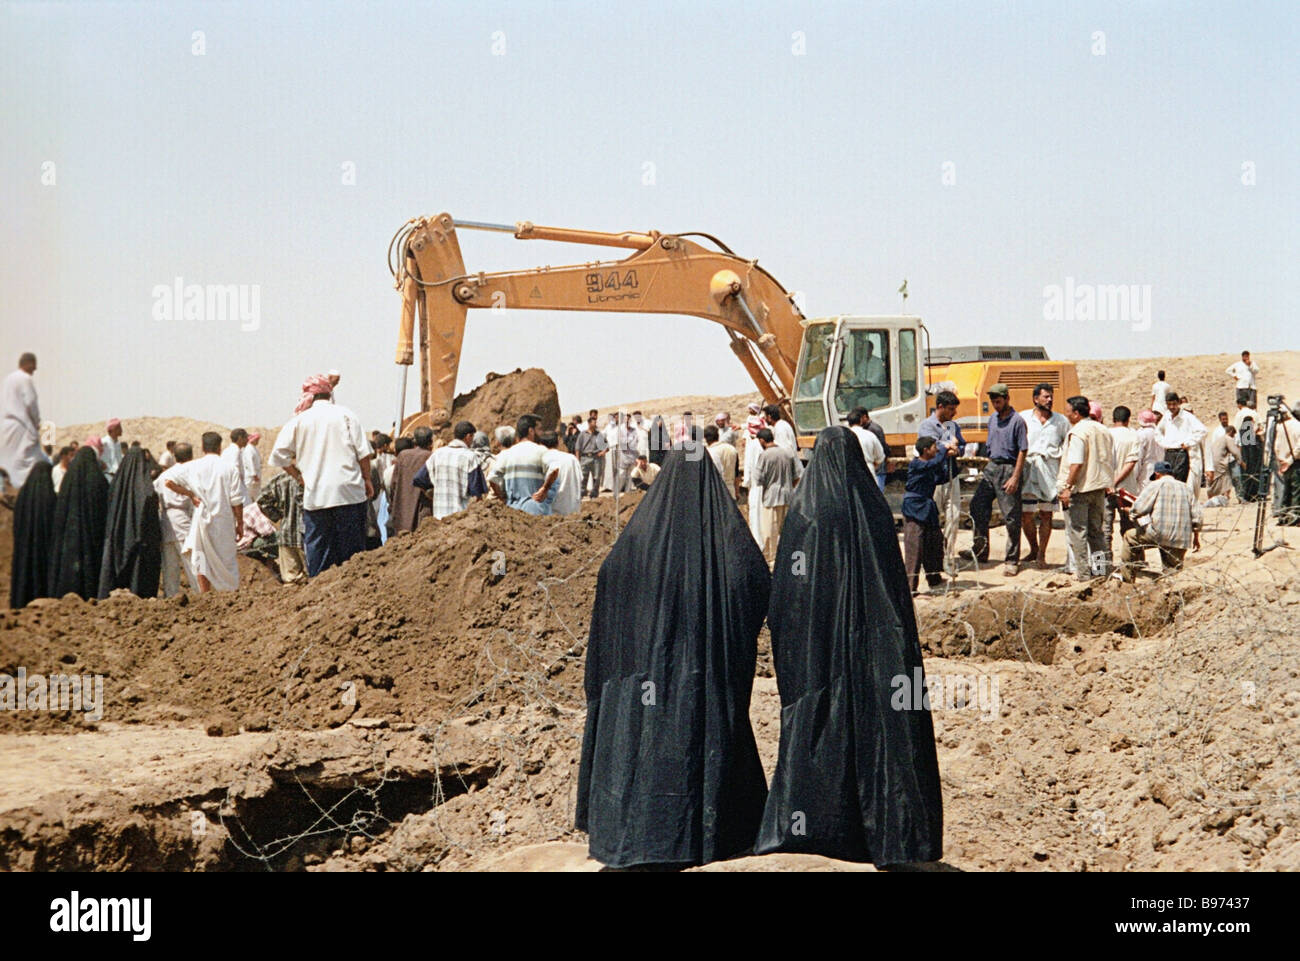 Excavating dozens of secret graves containing the remains of Shiites executed in 1991 by the Saddam Hussein regime - Stock Image